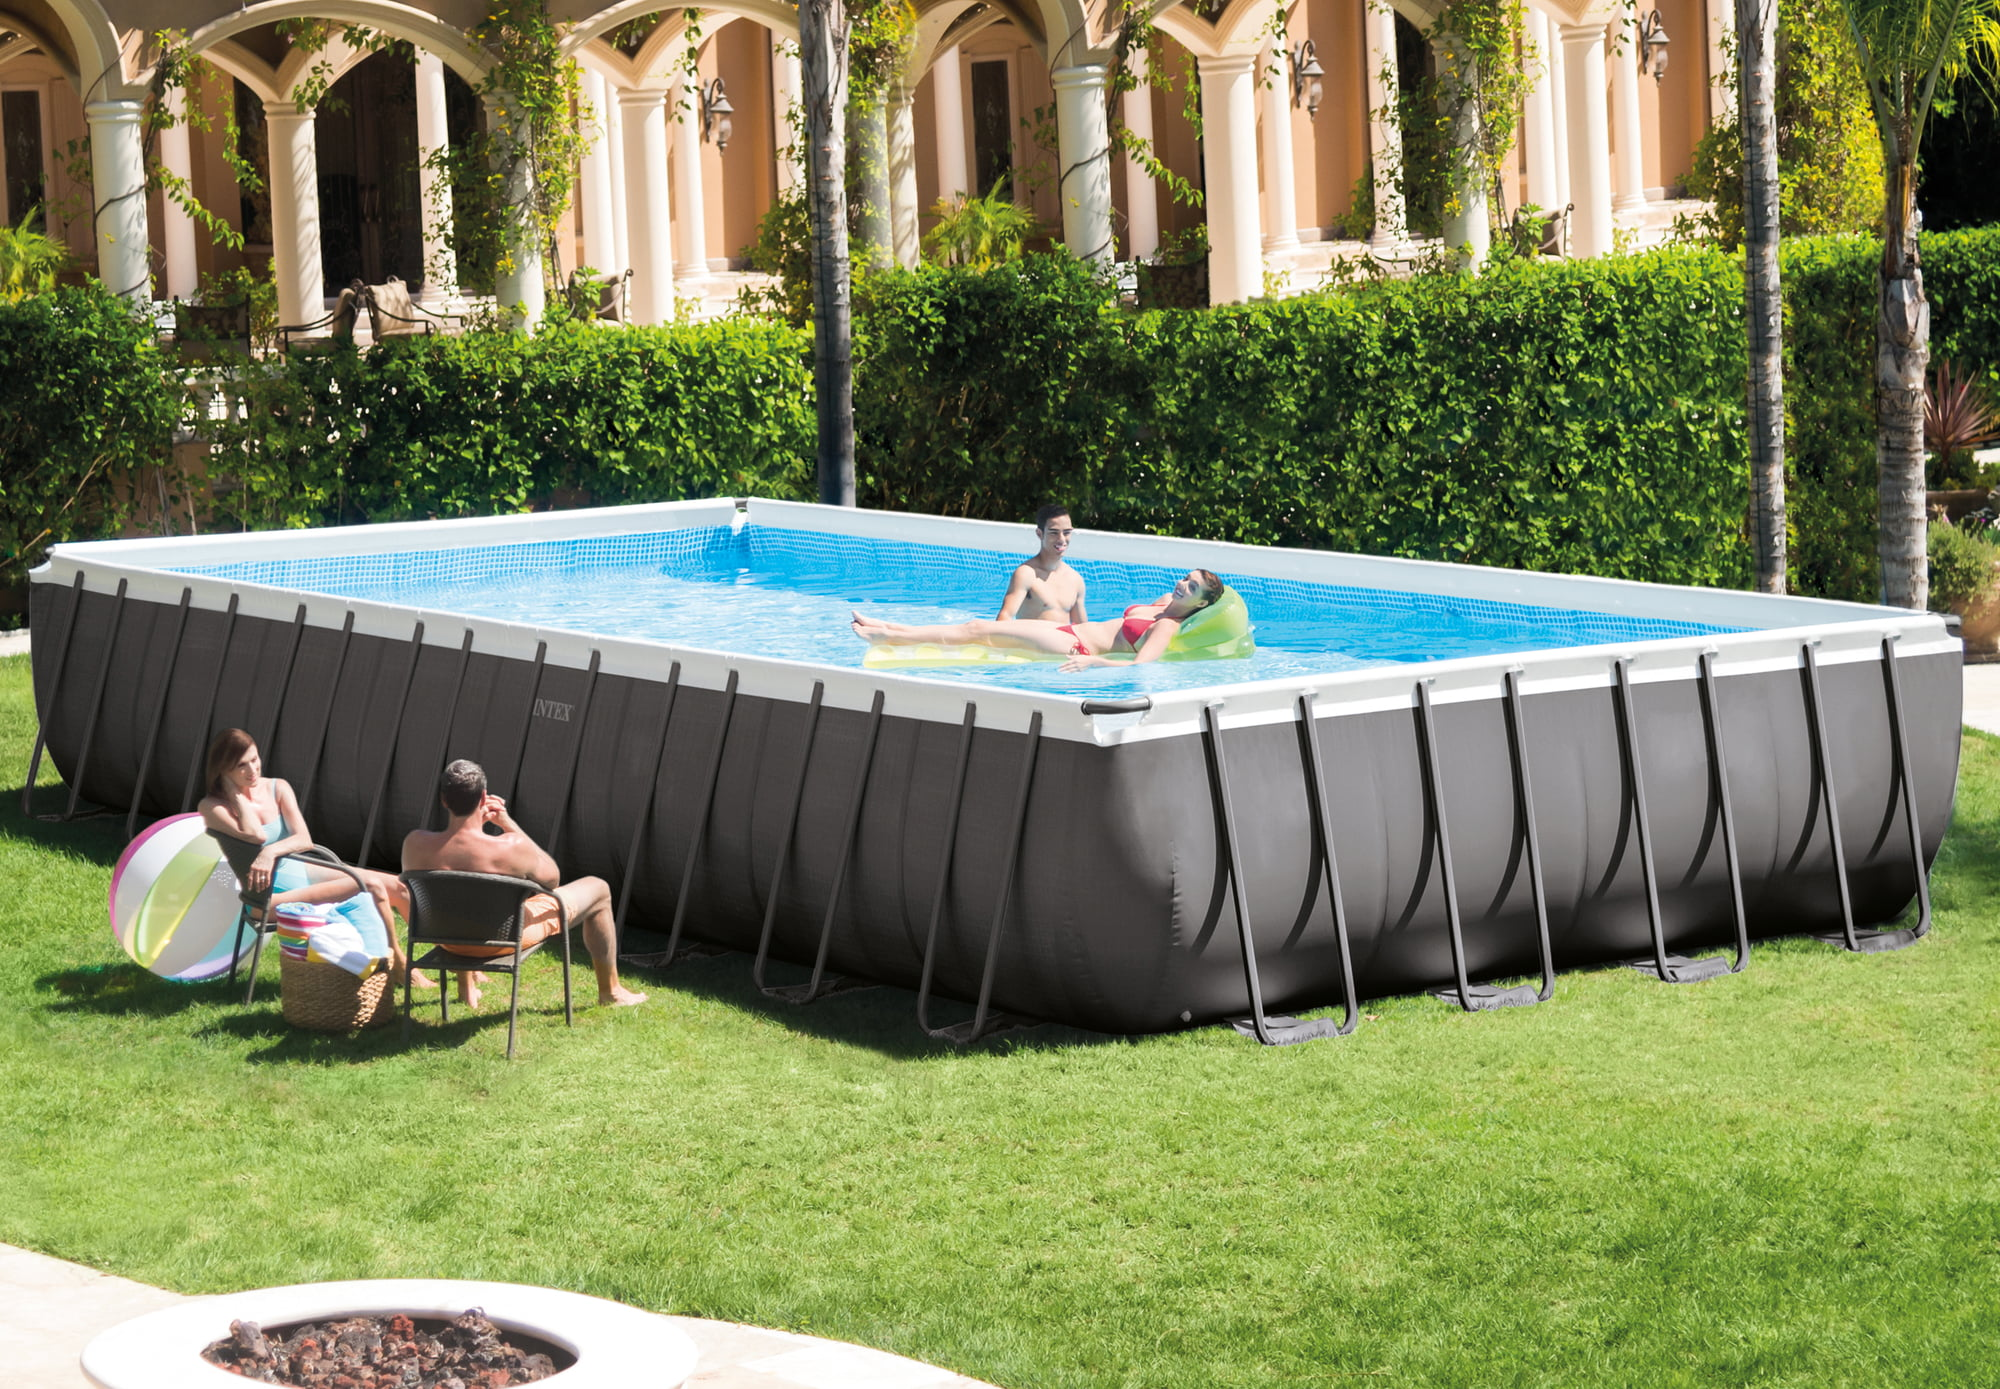 Pool Filteranlage Amazon Intex Frame Pool Ultra Quadra 975 X 488 X 132 Cm 1 Set